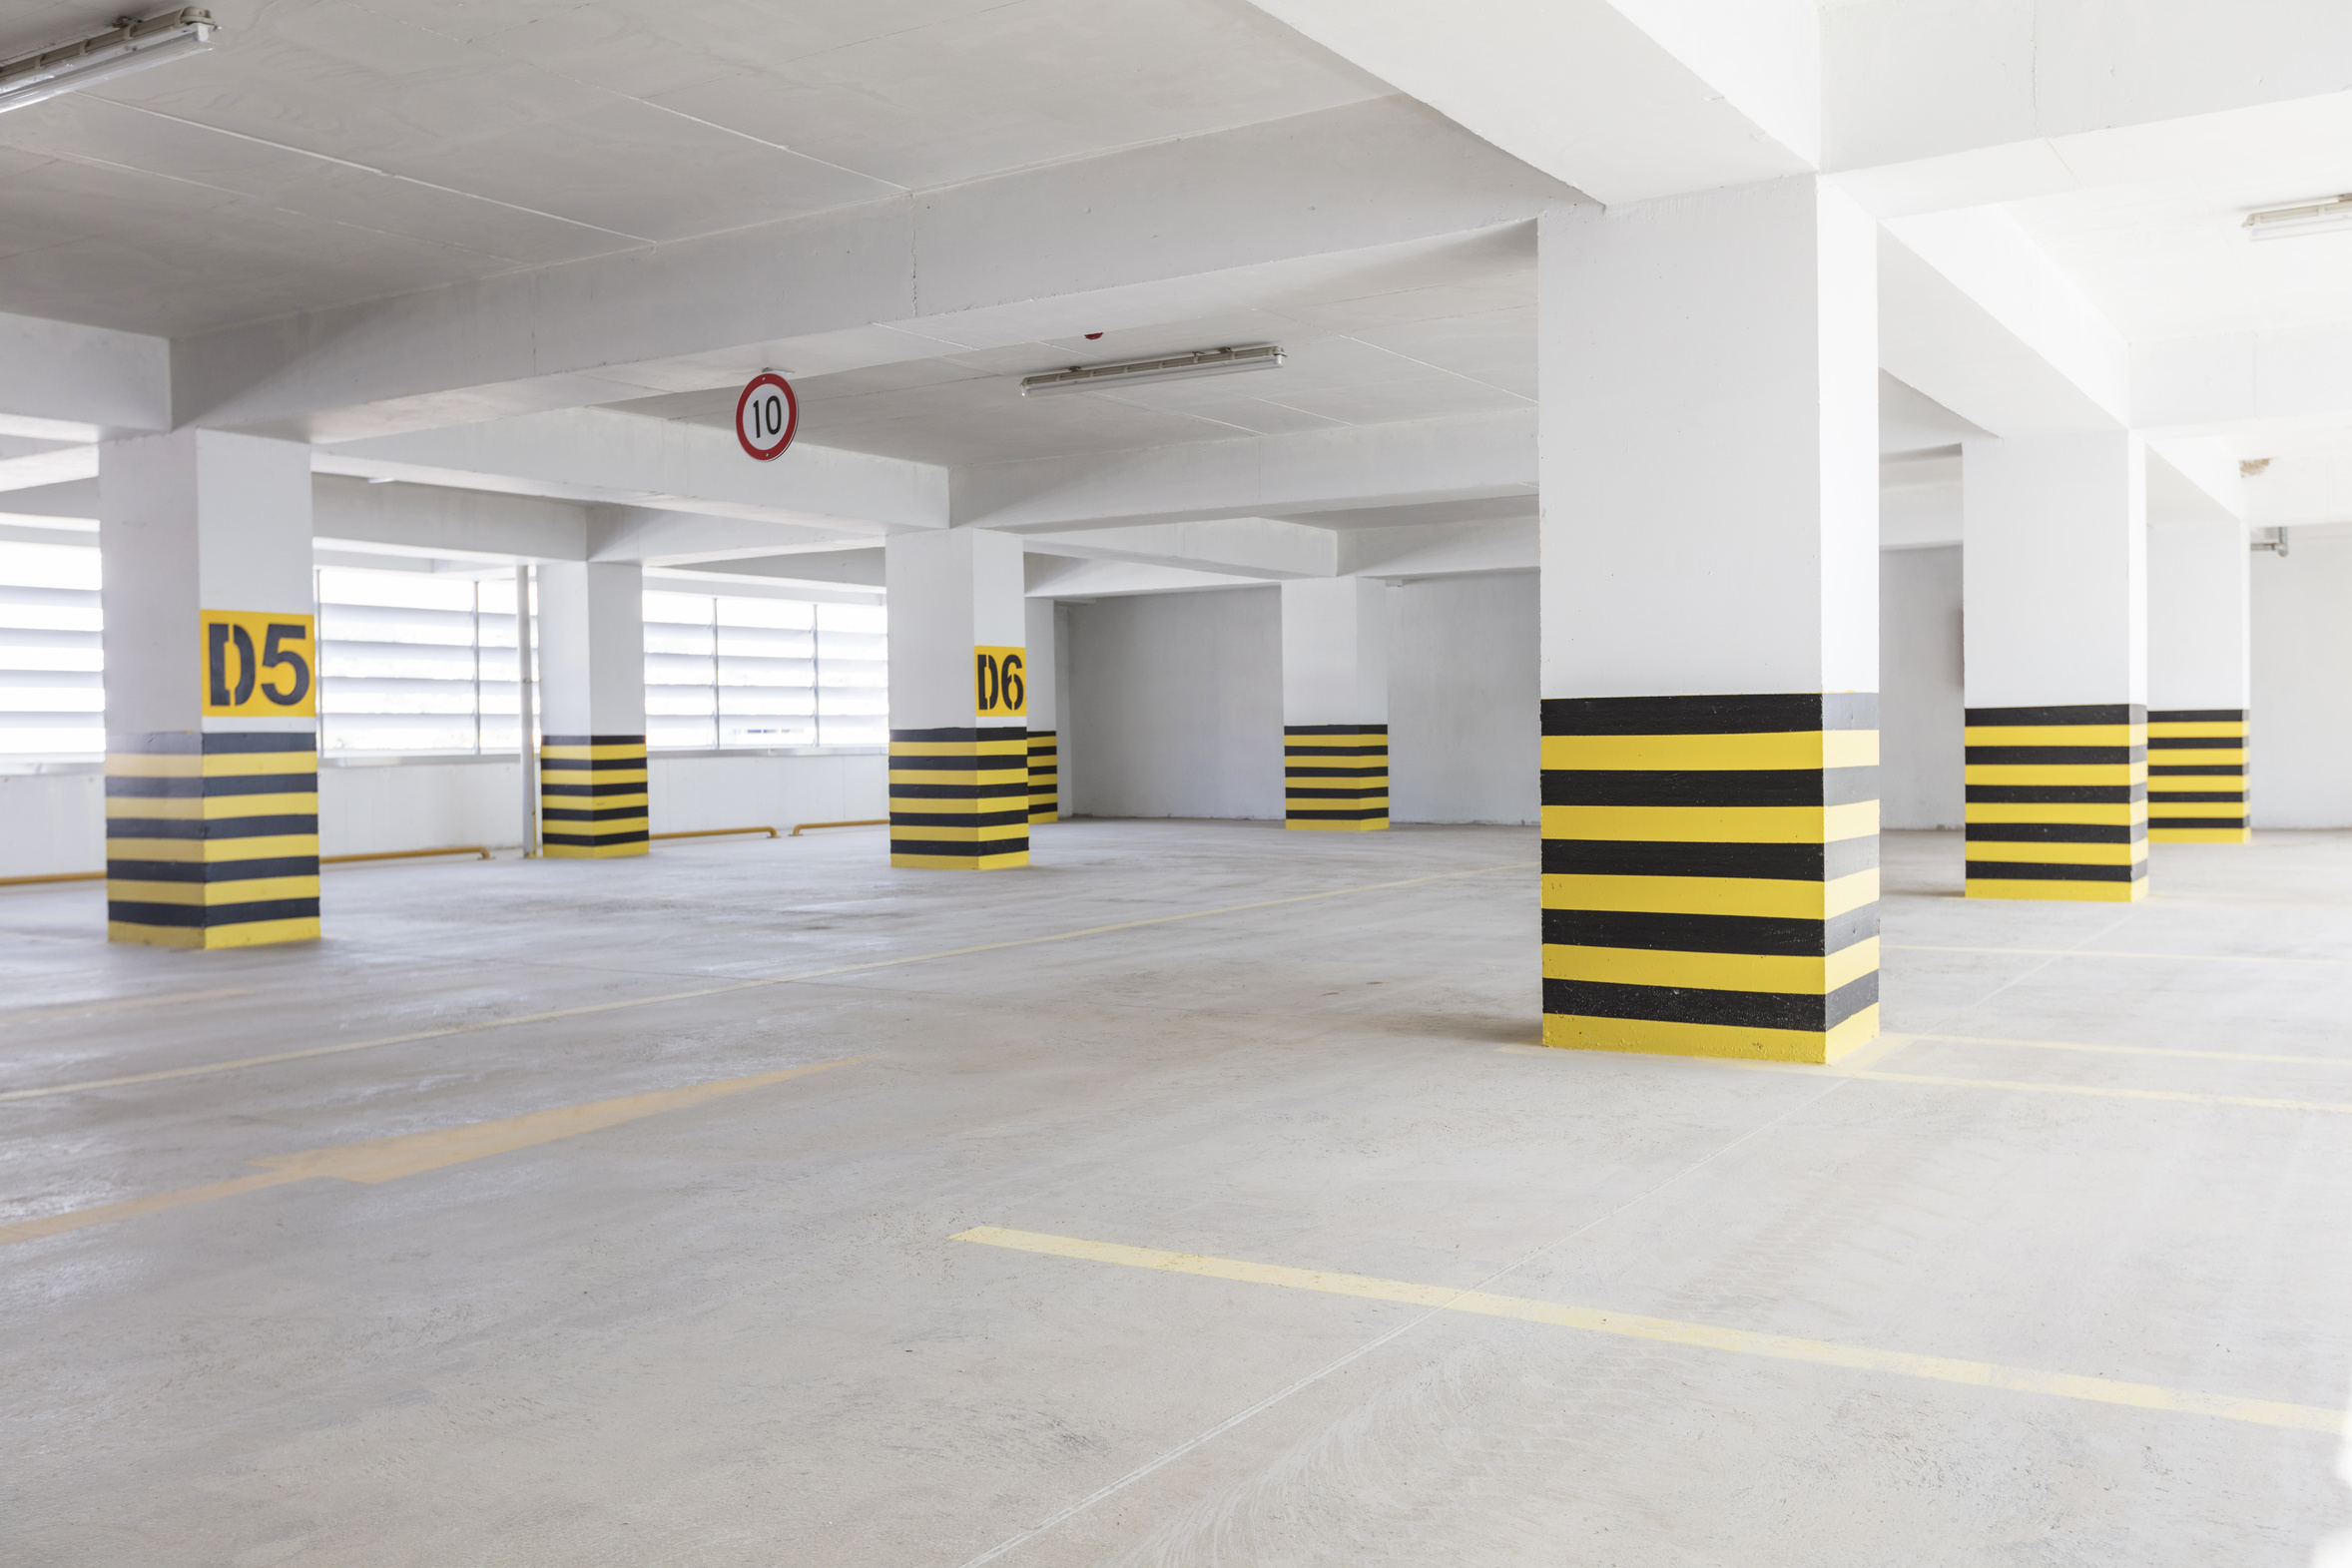 Nettoyage de parking